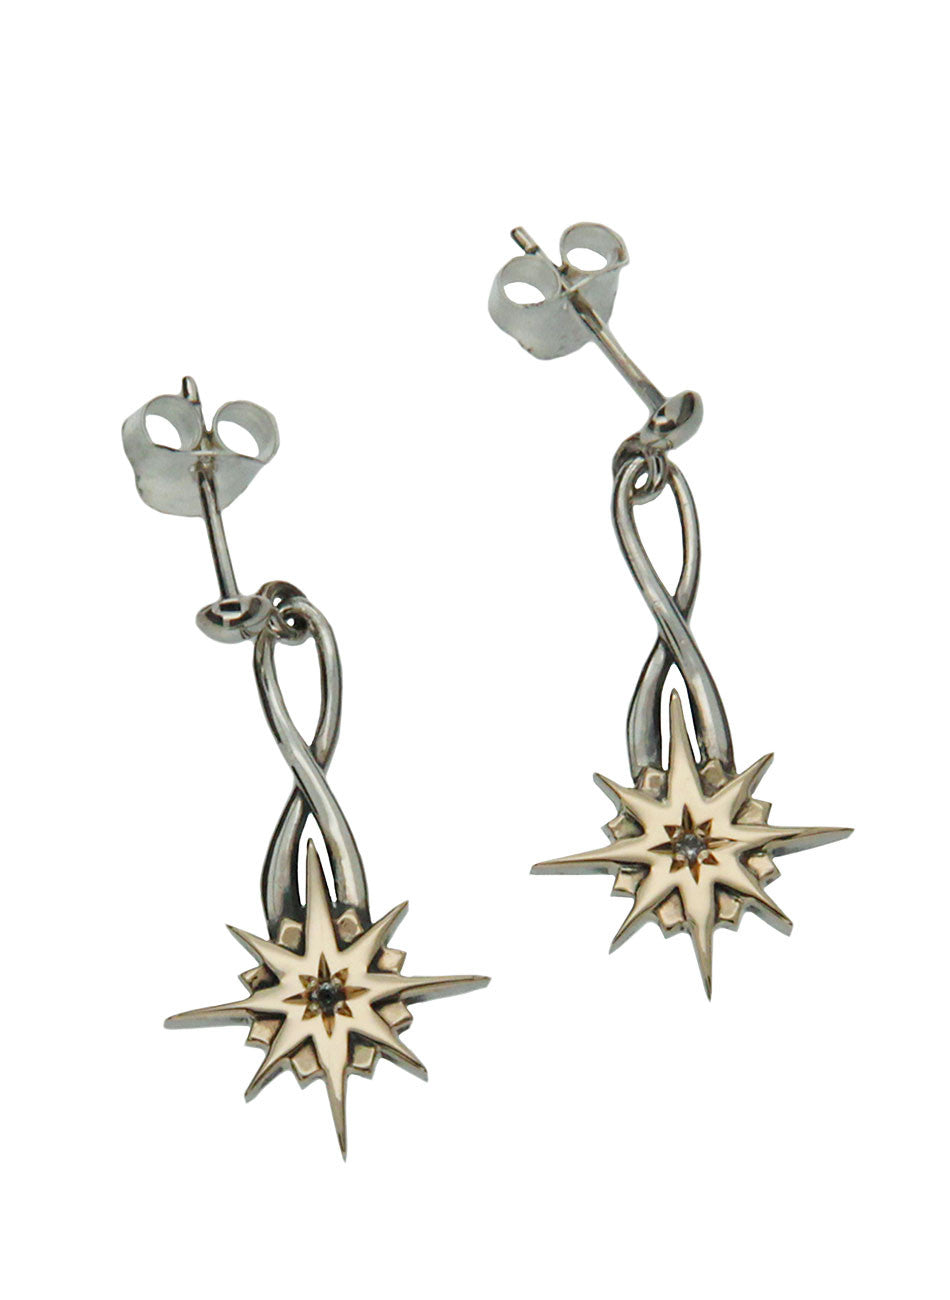 Norse Forge Compass Earrings - White Sapphire